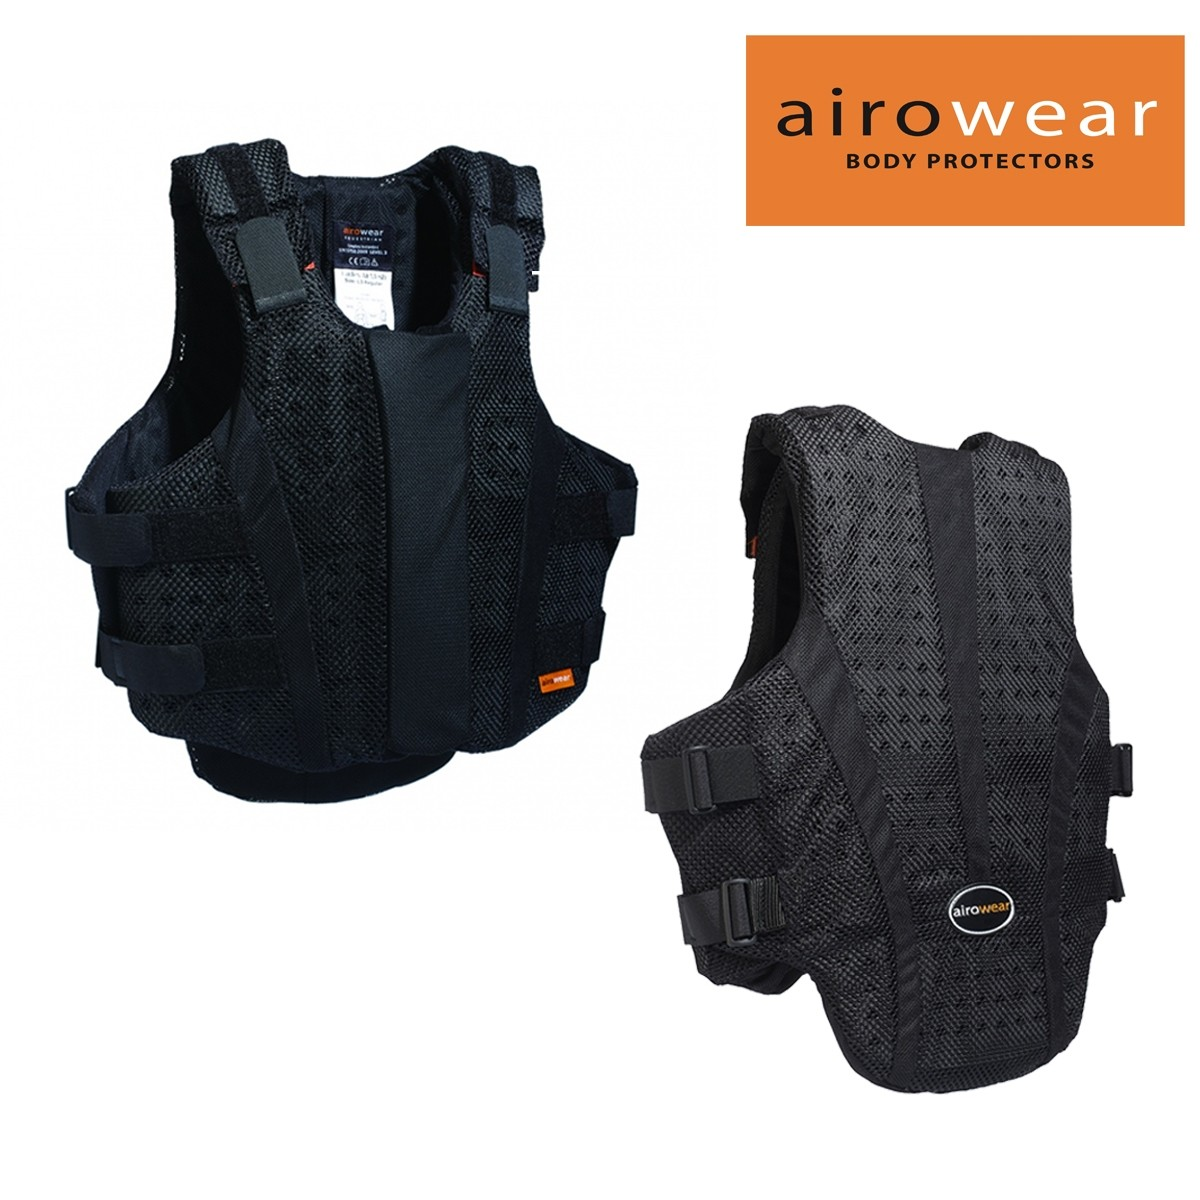 Airowear AirMesh Body Protector - Childs